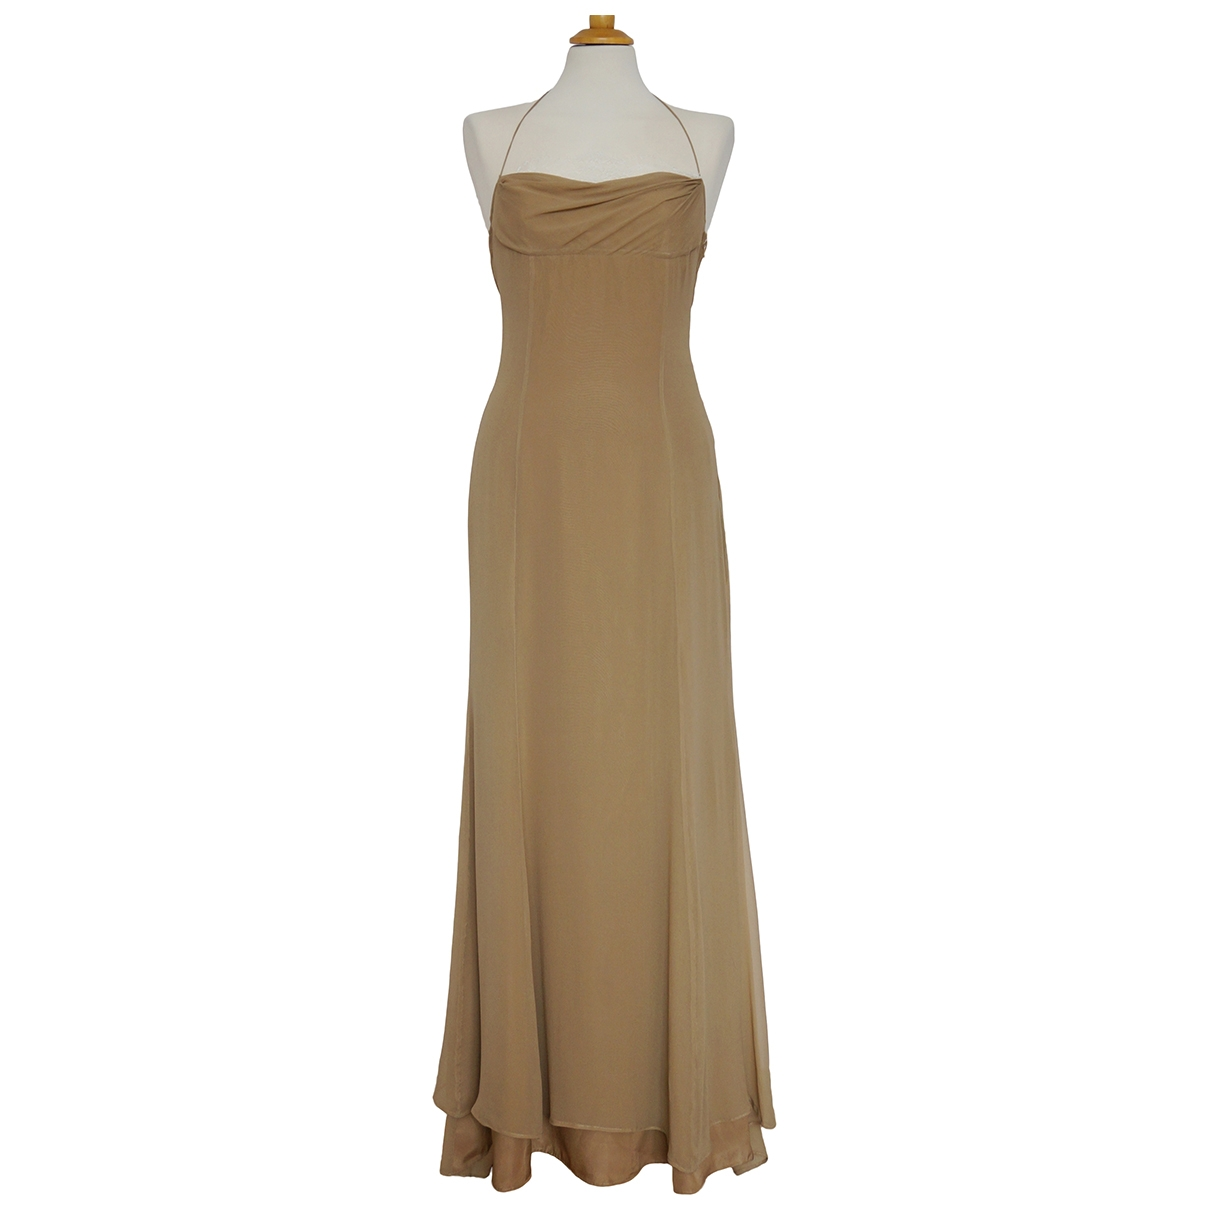 Valentino Garavani \N Beige Silk dress for Women 44 IT